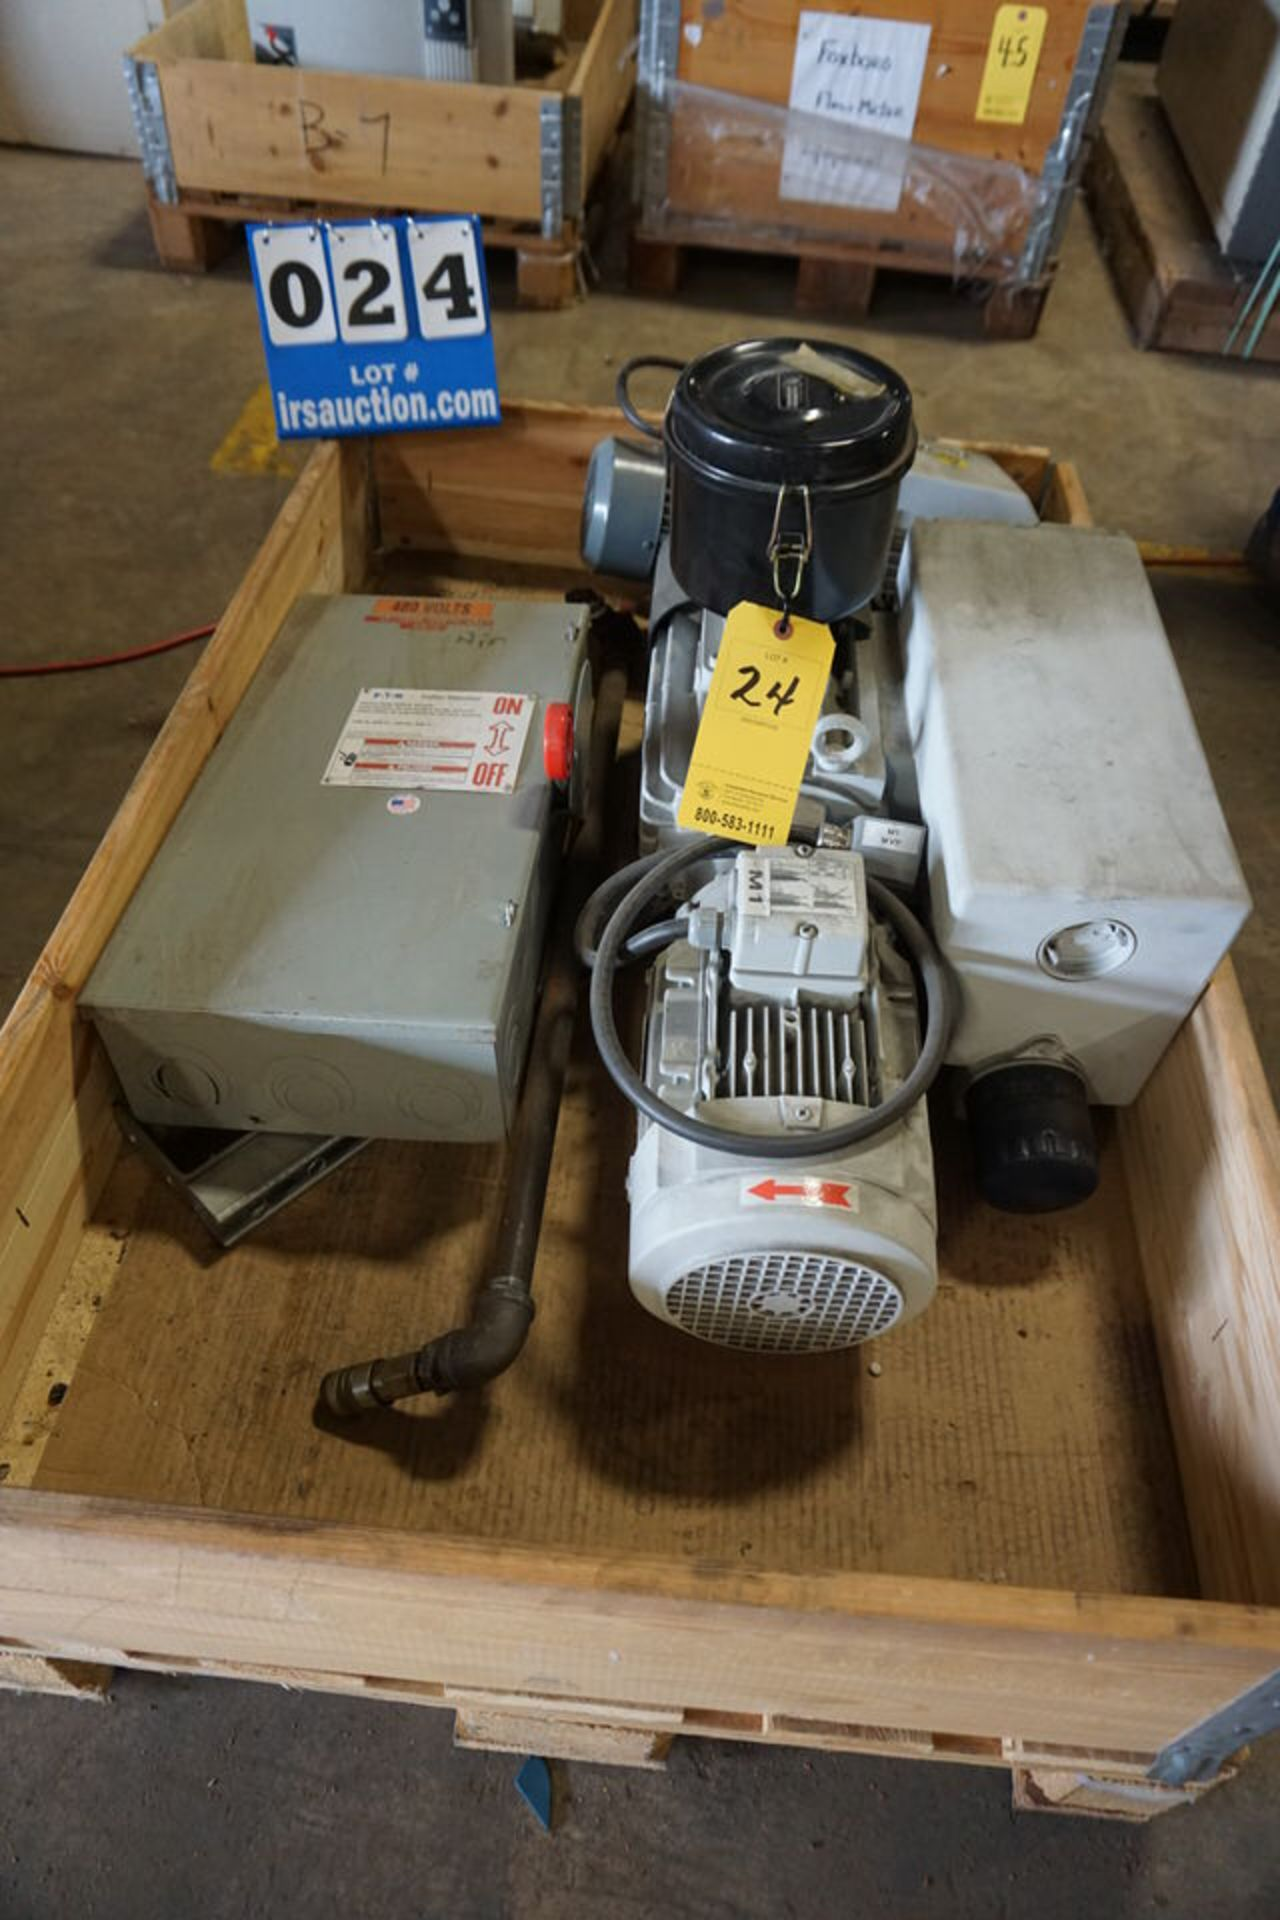 Lot 24 - LEYBOLD VACCUM PUMP MDL:SV100-B-960503 W/ LEYBOLD VACCUM PUMP MDL:11256, TYPE:128B (Location: 903